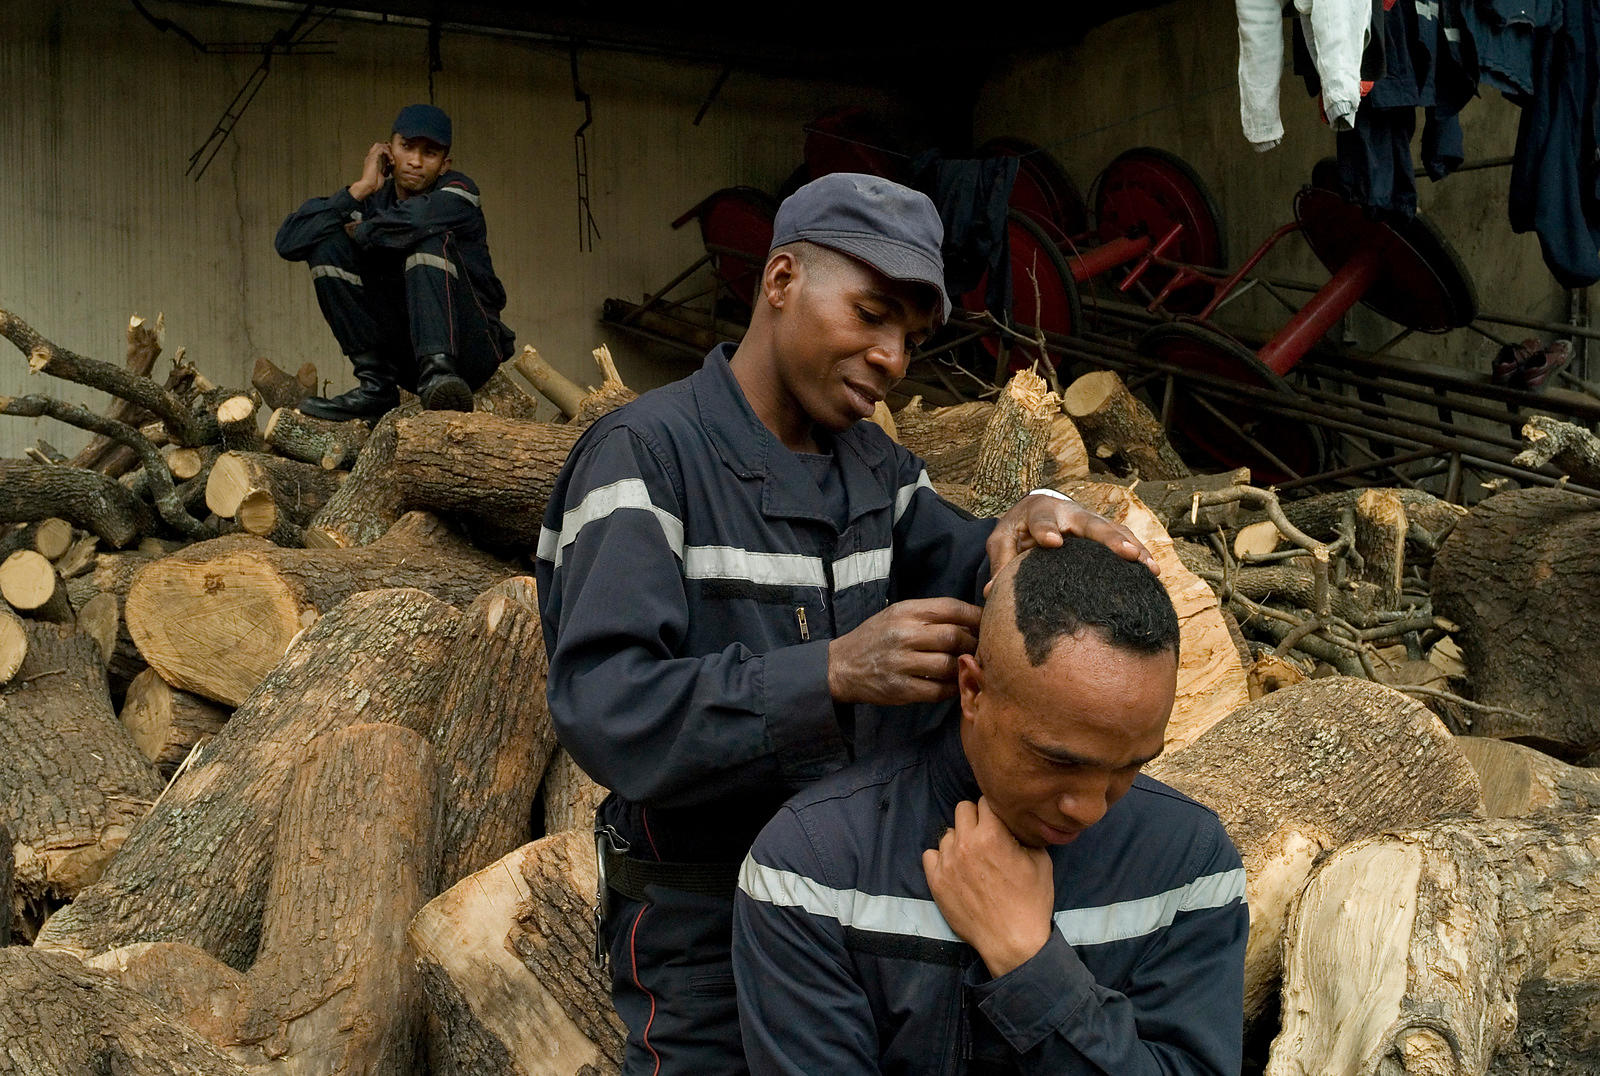 Firemen getting a haircut on a stack of wood.